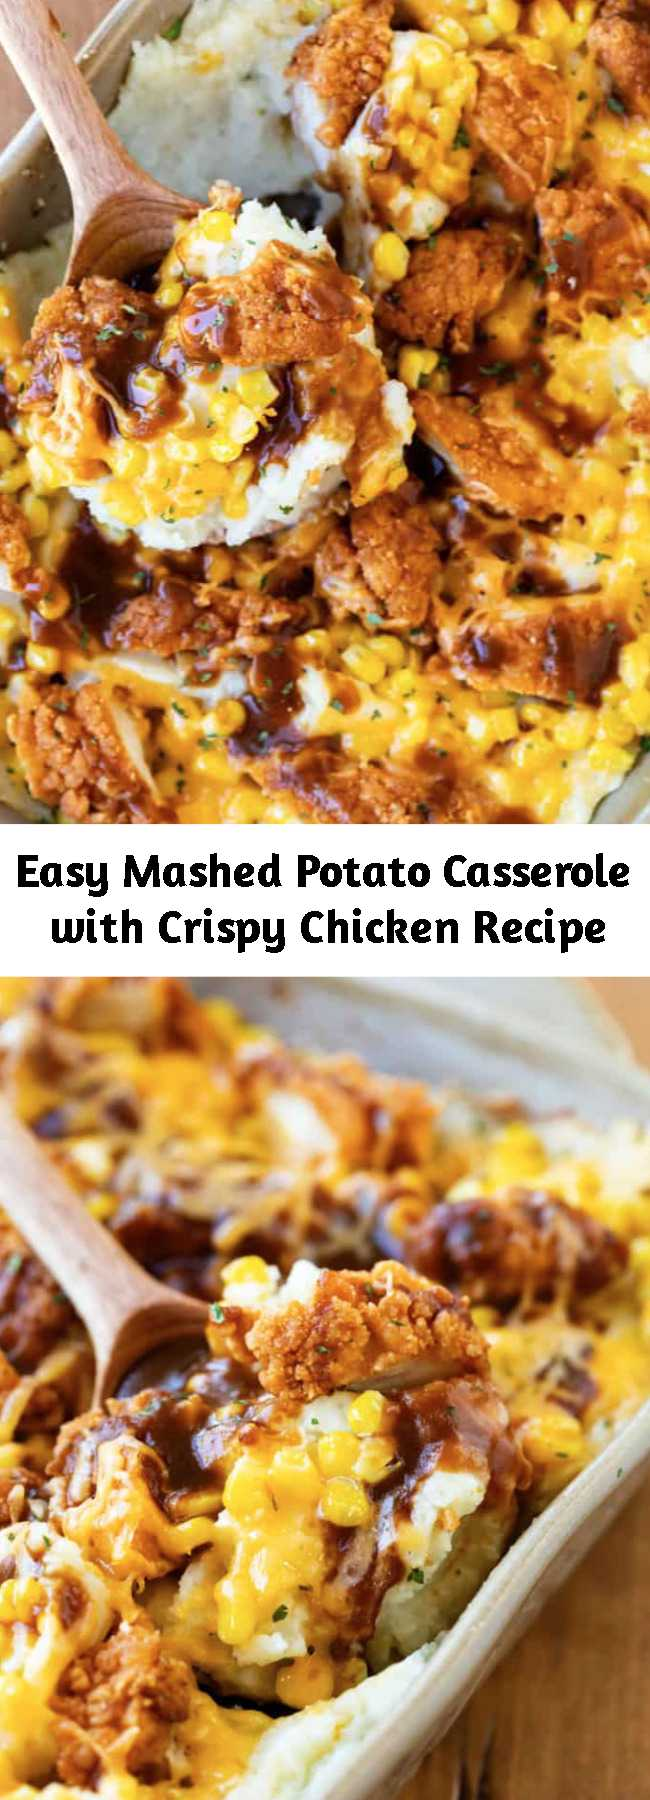 Easy Mashed Potato Casserole with Crispy Chicken Recipe - This mouth-watering mashed potato casserole is loaded with creamy mashed potatoes and topped with  Crispy Chicken Tenders, corn, cheddar cheese, and a drizzle of brown gravy! It's easy to make ahead of time and bake later for a quick family dinner! #comfortfood #familydinnerideas #dinnerideas #chickendinnerideas #thanksgivingleftovers